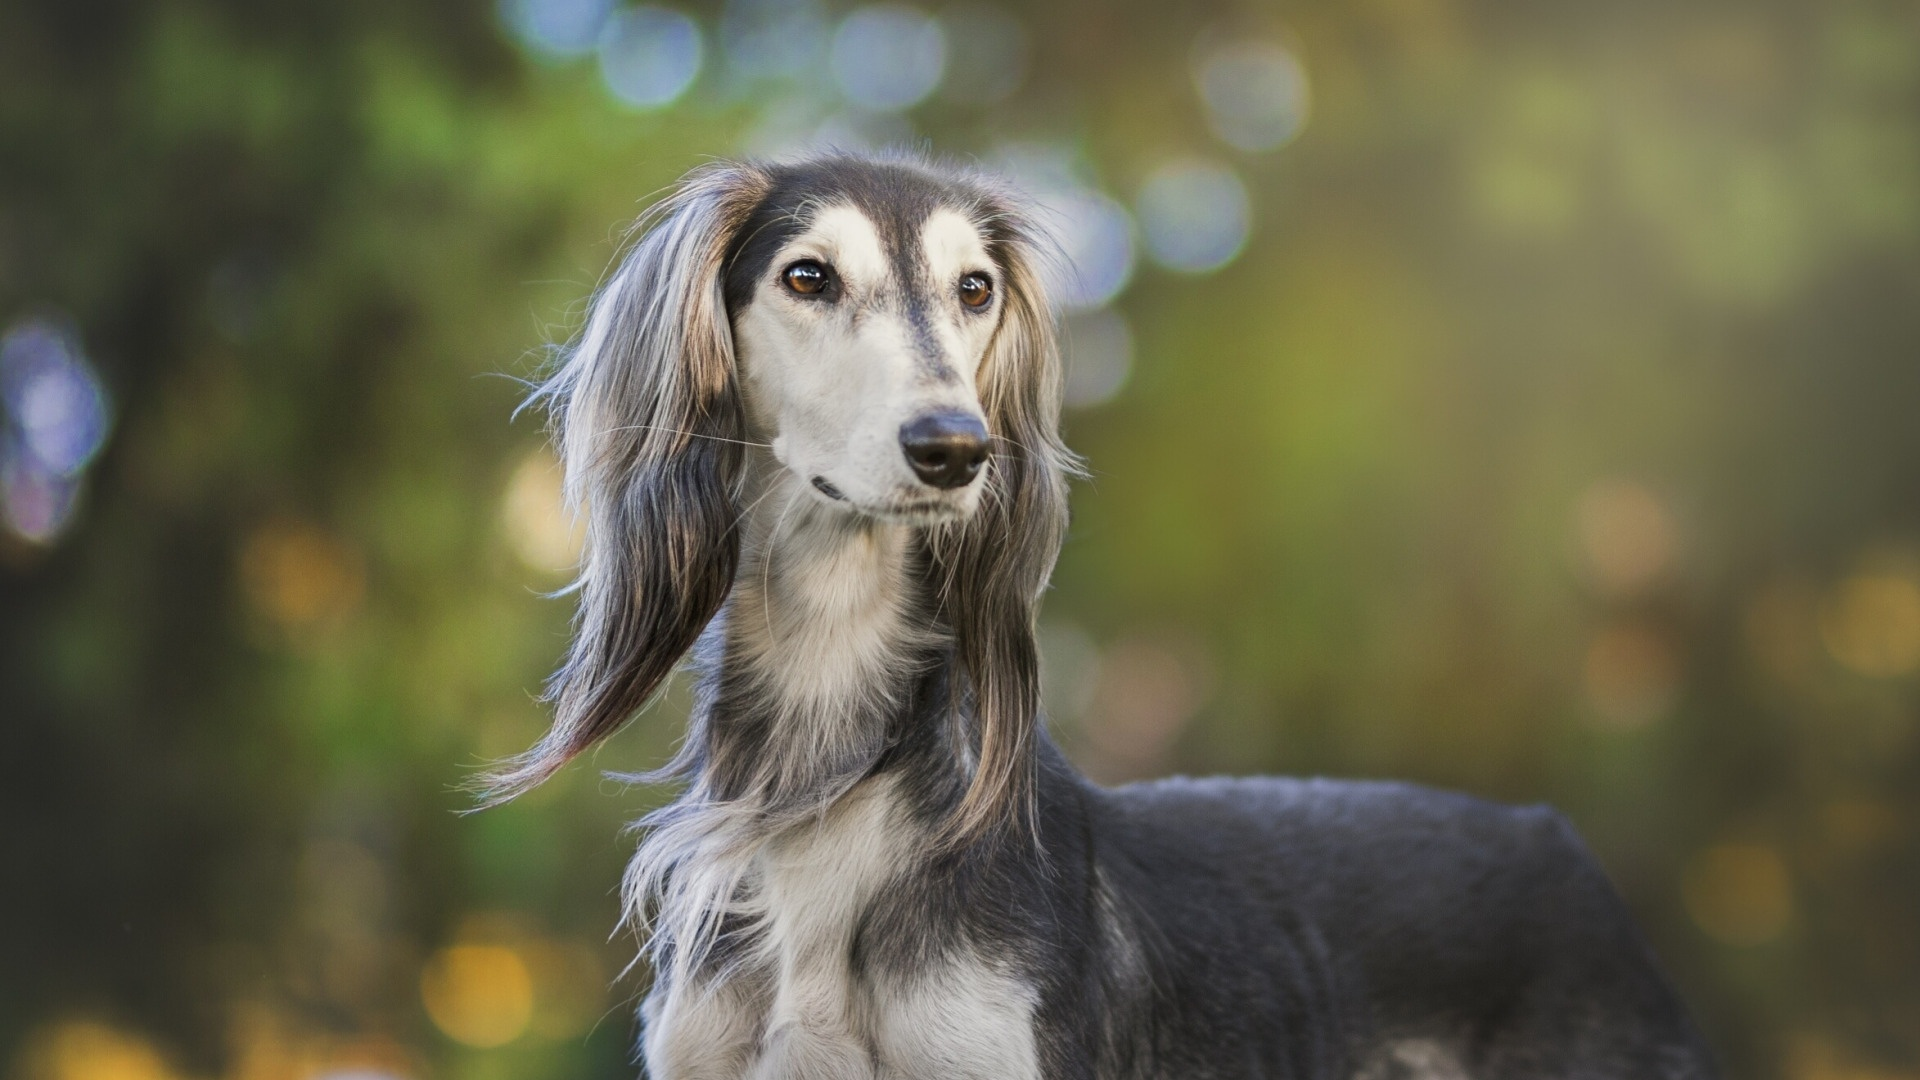 Afghan Hound wallpaper photo hd